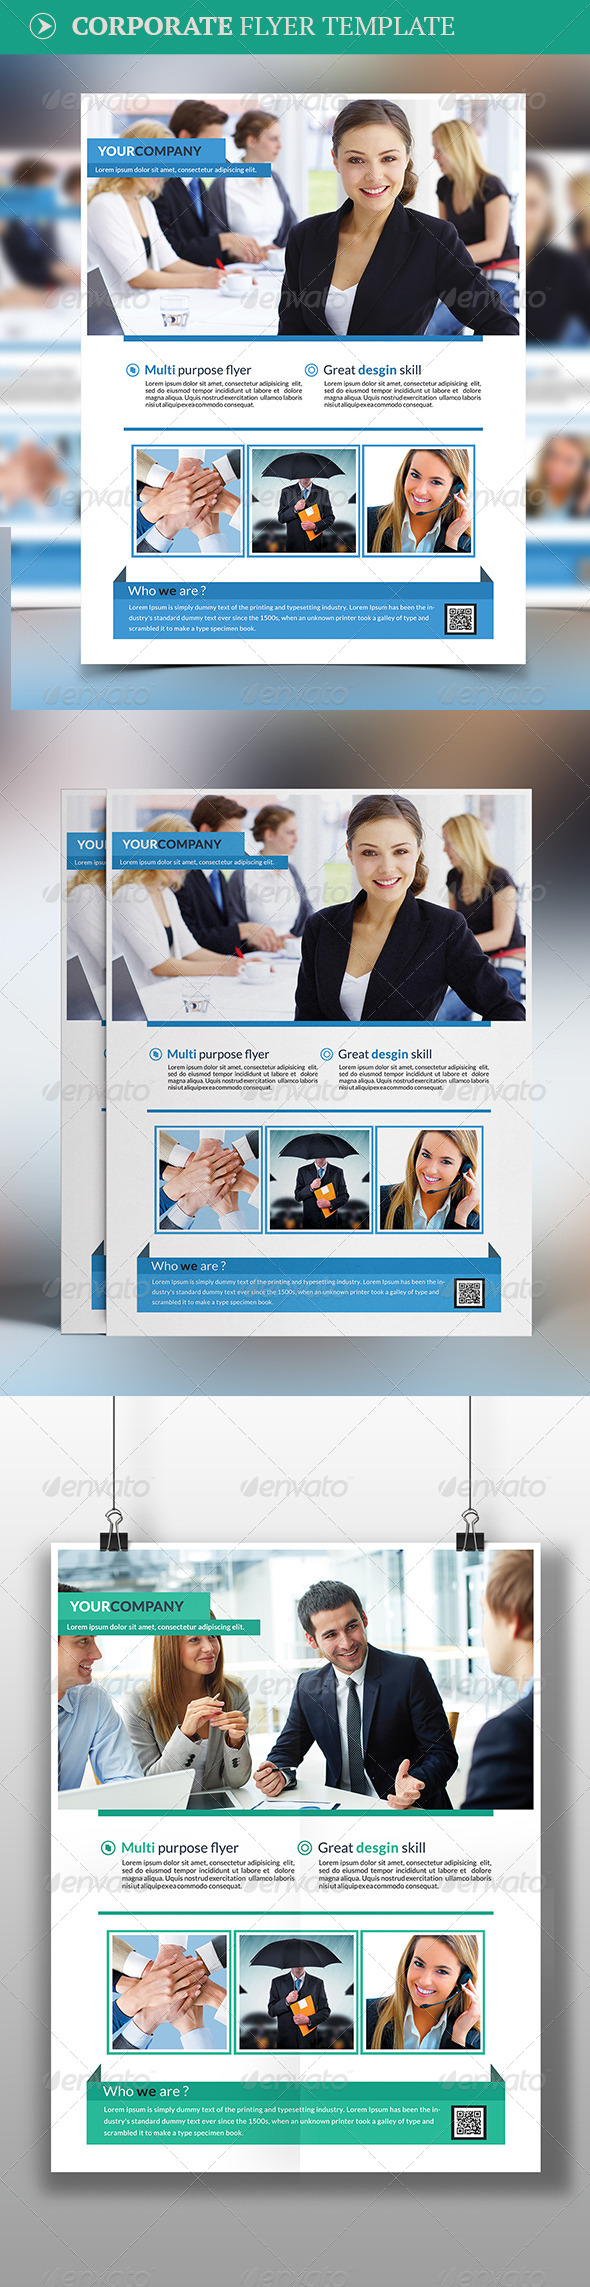 GraphicRiver Corporate Flyer Template 7998809